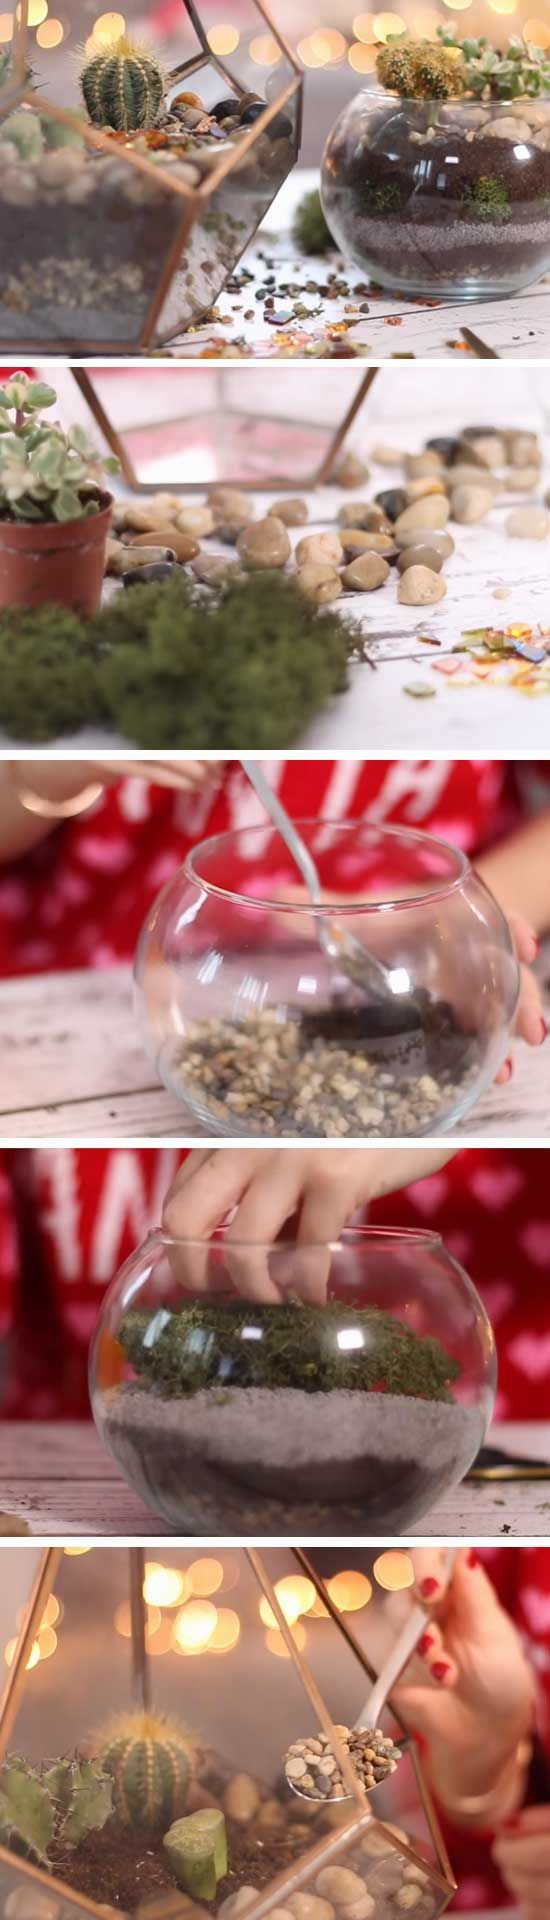 Last Minute Homemade Christmas Gift Ideas For Mom. Diy Mothers Day ...